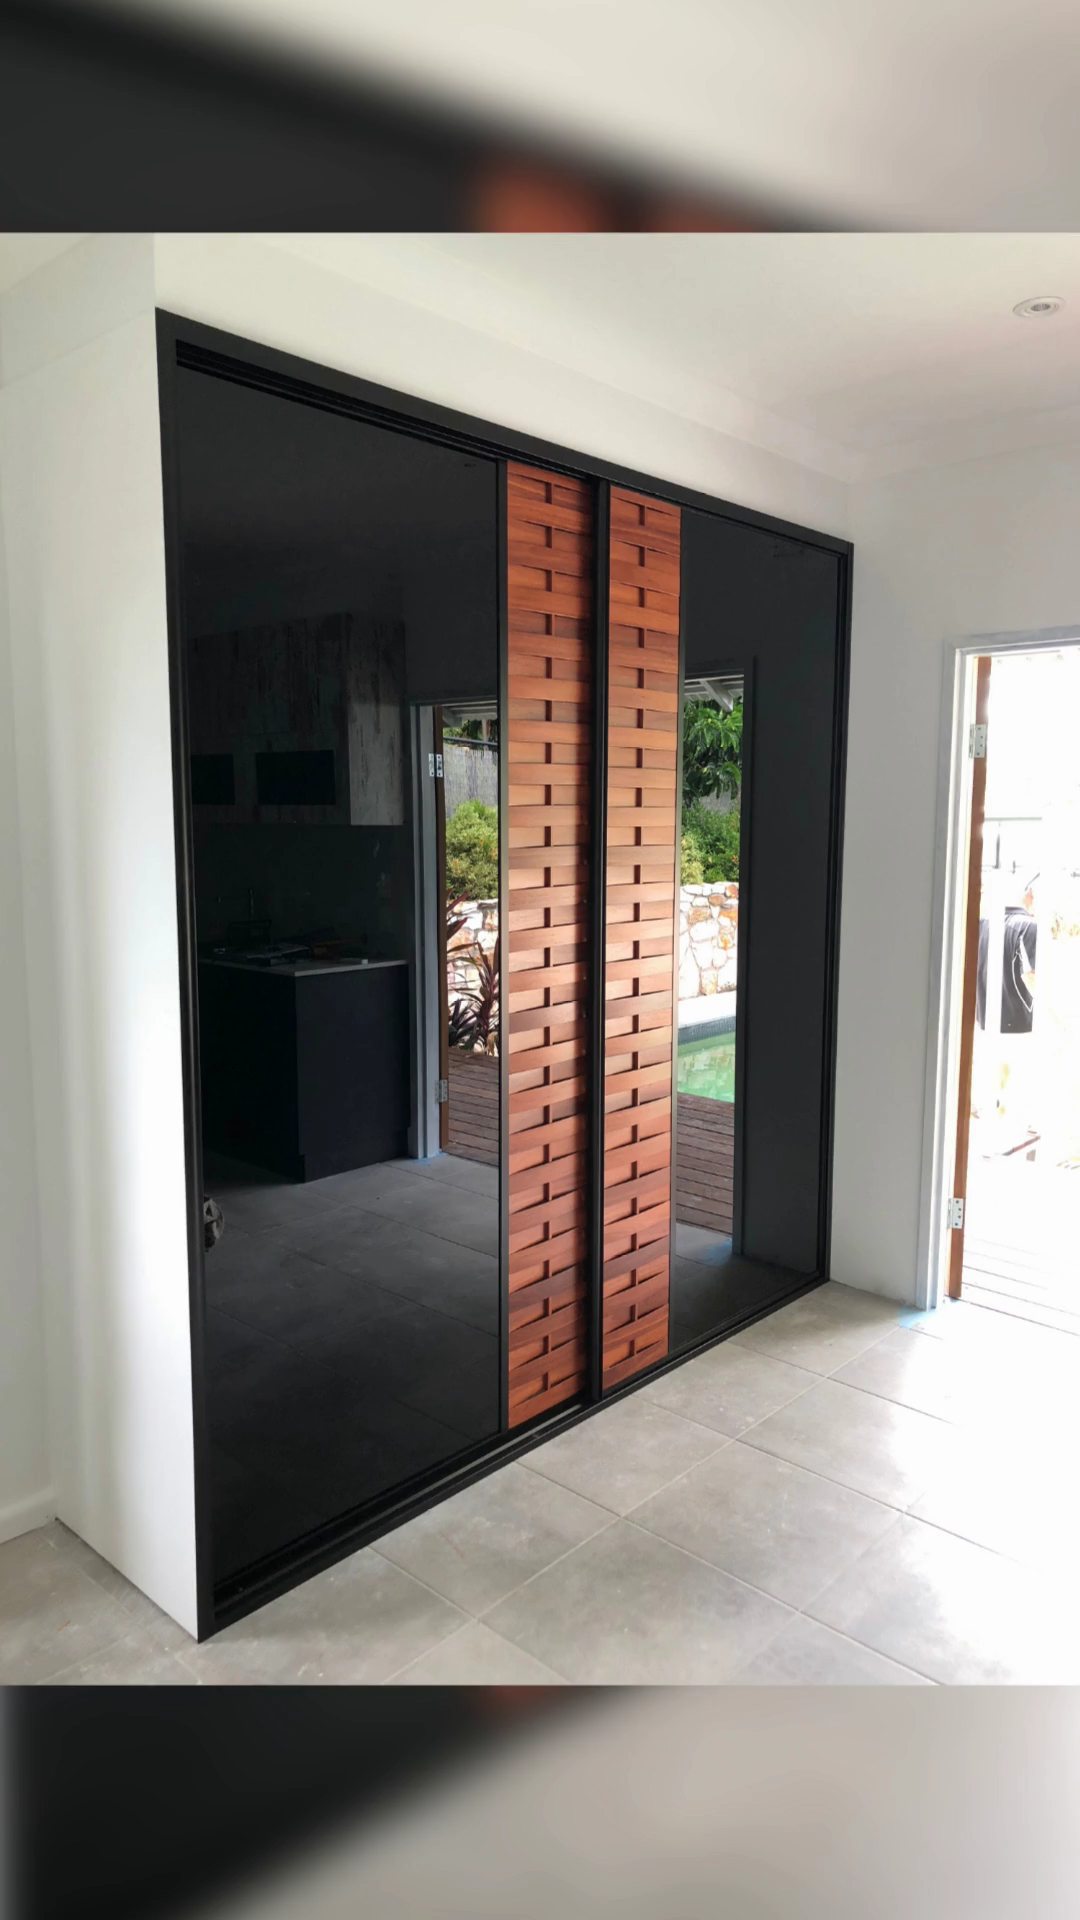 Louvre Sliding Doors With Black Glass Video Glass Room Divider Sliding Doors Interior And Exterior